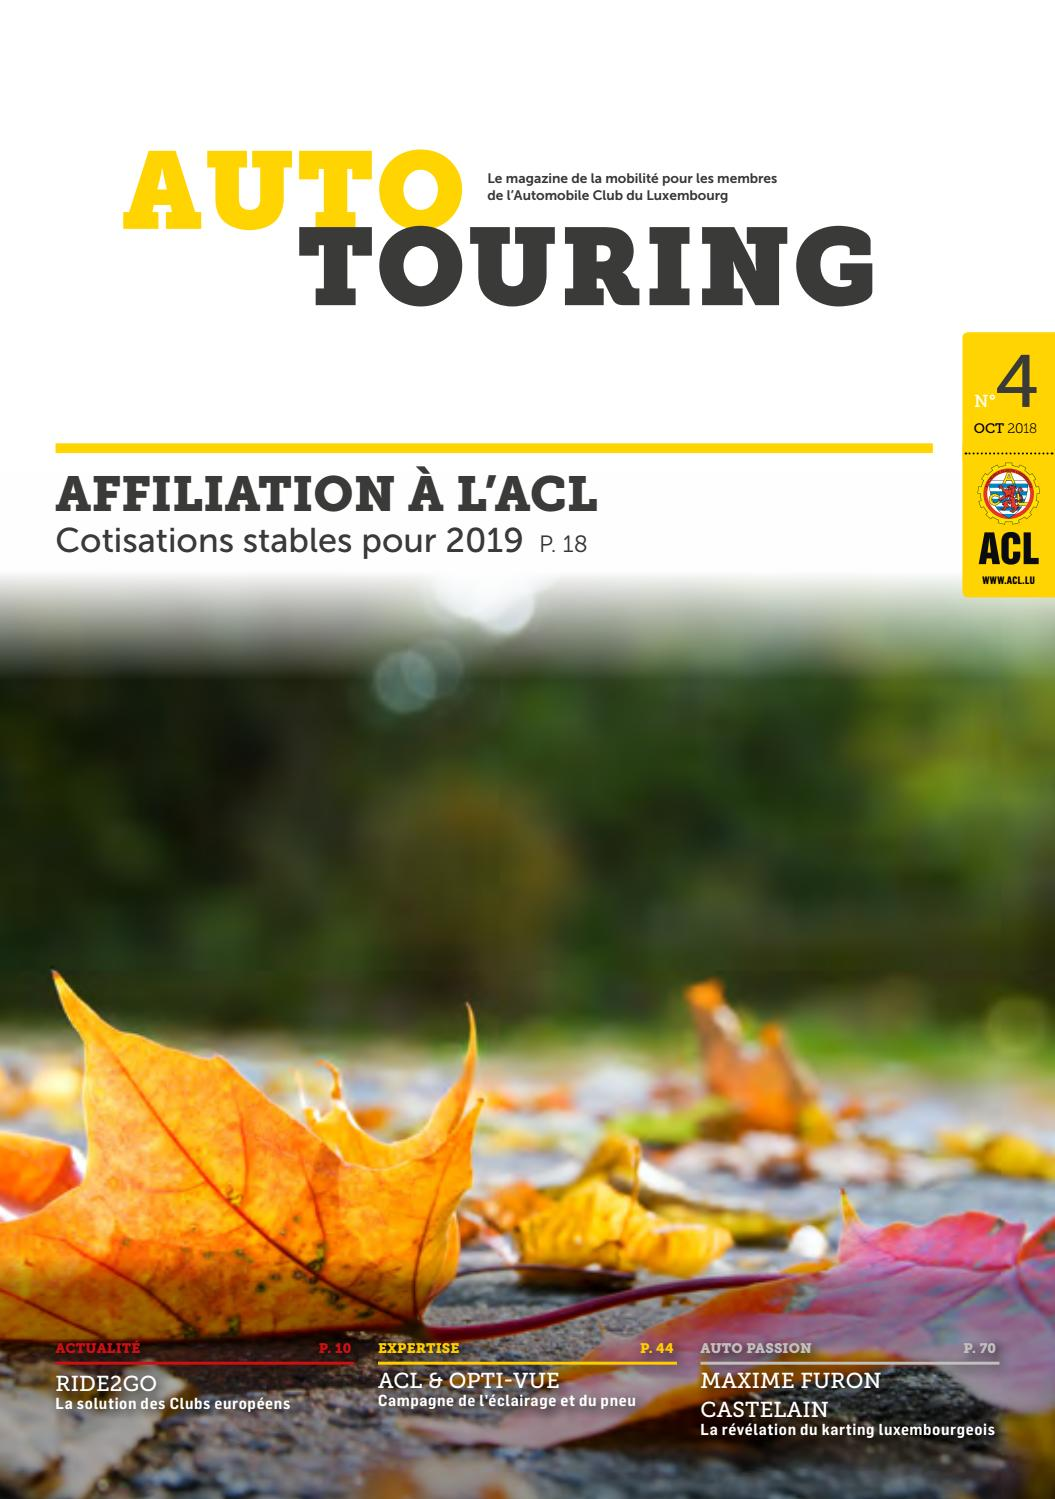 e1826221404b5a Autotouring - octobre 2018 by ACL - issuu